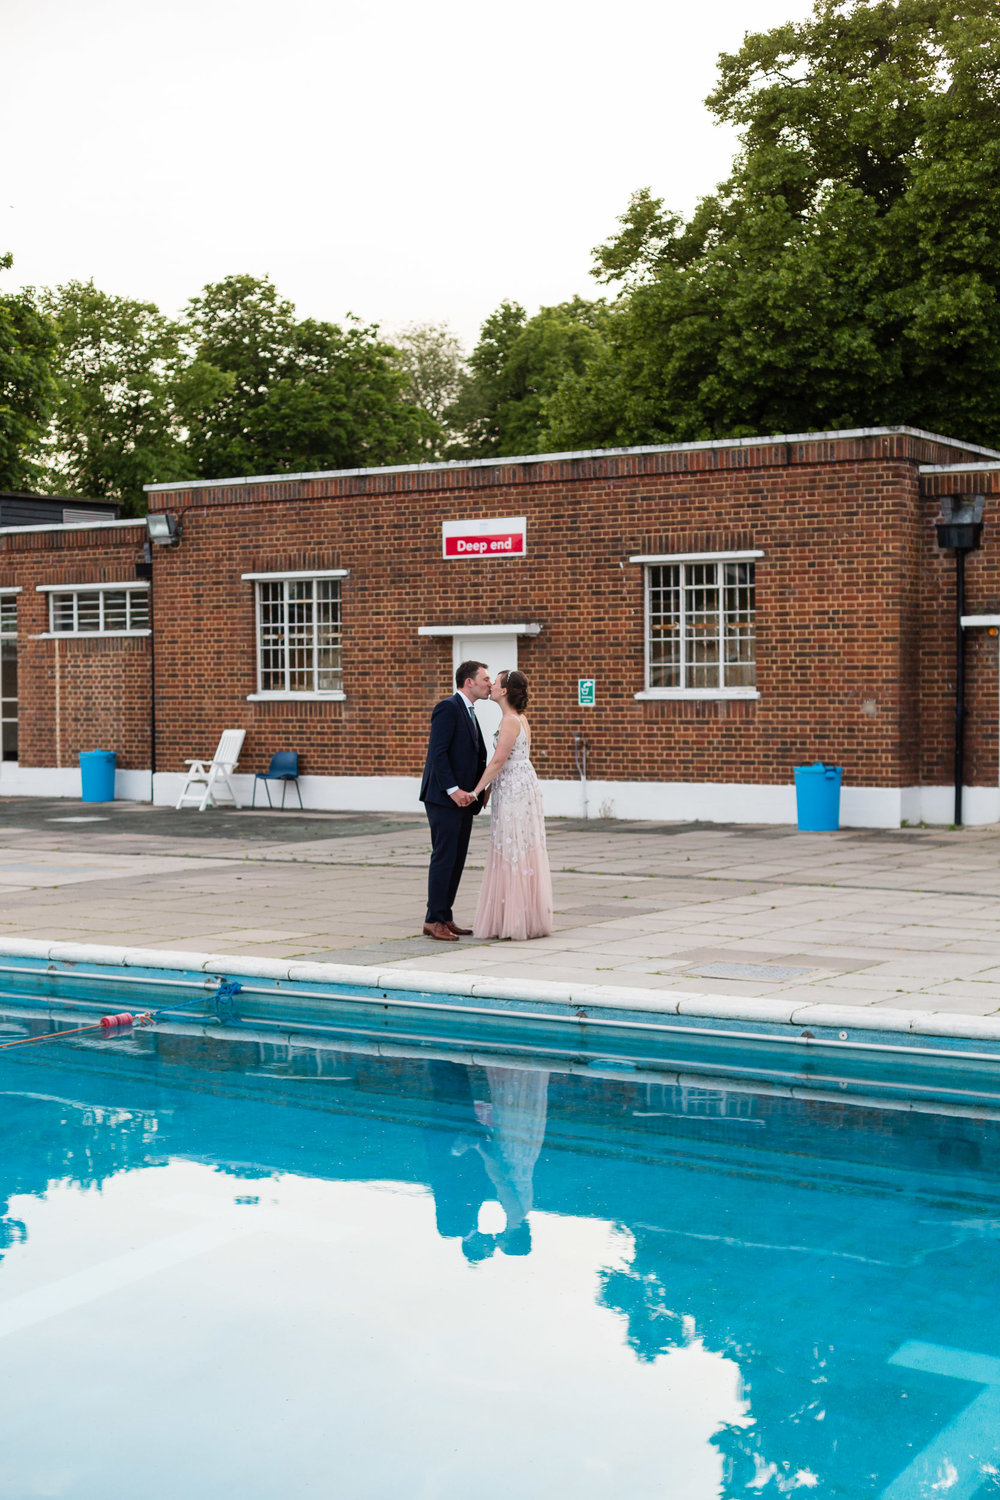 brockwell-lido-brixton-herne-hill-wedding-378.jpg